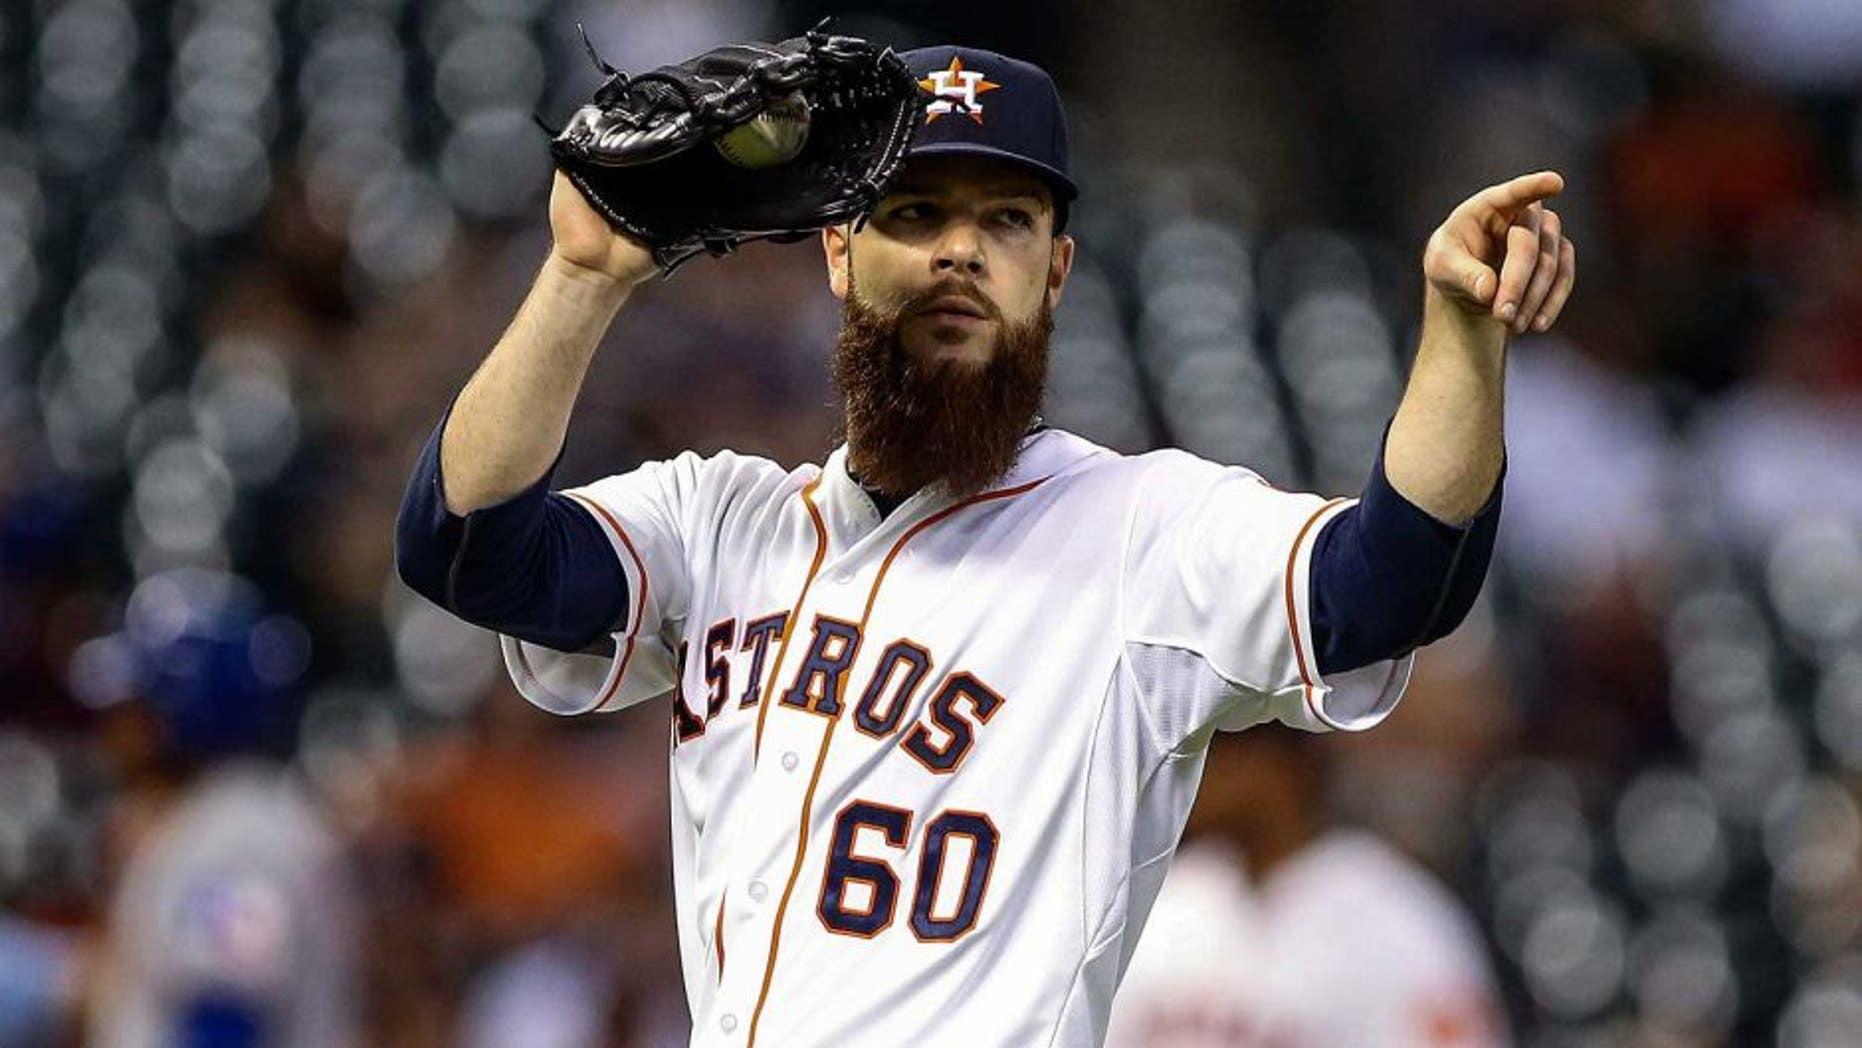 May 4, 2015; Houston, TX, USA; Houston Astros starting pitcher Dallas Keuchel (60) points to first baseman Chris Carter (not pictured) after a play during the fifth inning against the Texas Rangers at Minute Maid Park. Mandatory Credit: Troy Taormina-USA TODAY Sports